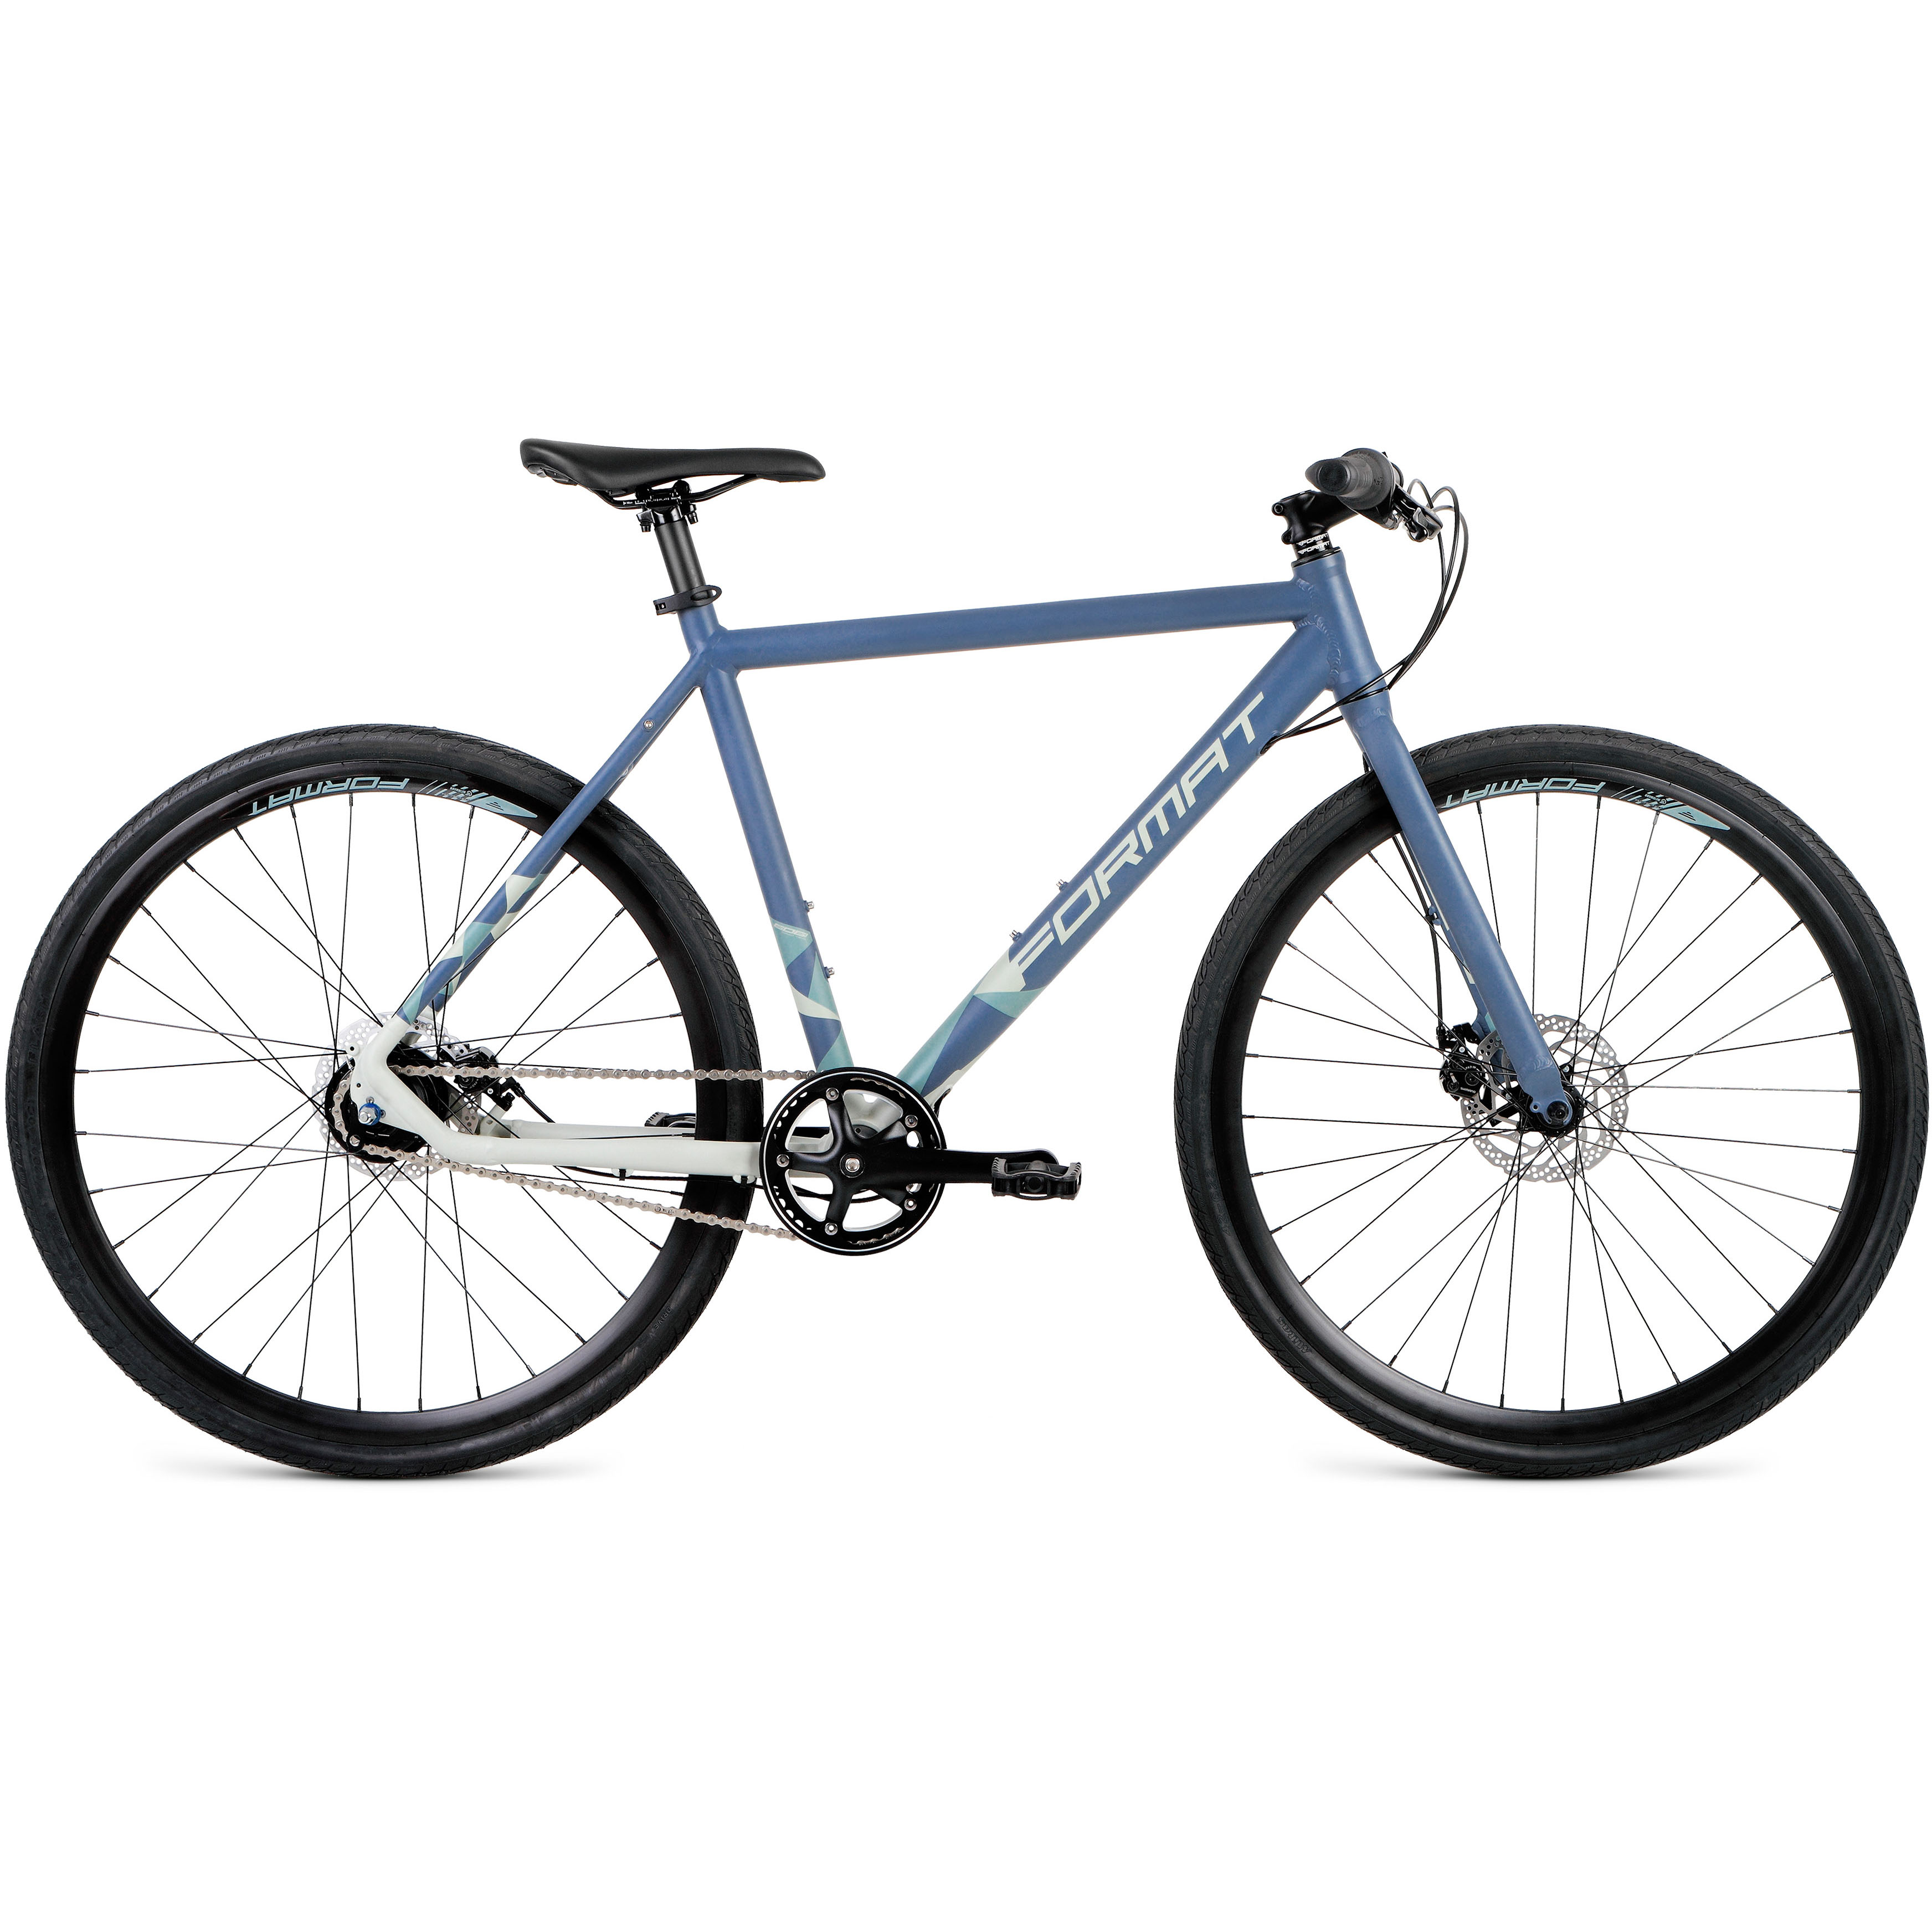 Bicycle FORMAT 5341 (700C 8 IC. Height 540mm) 2017-2018 цена и фото